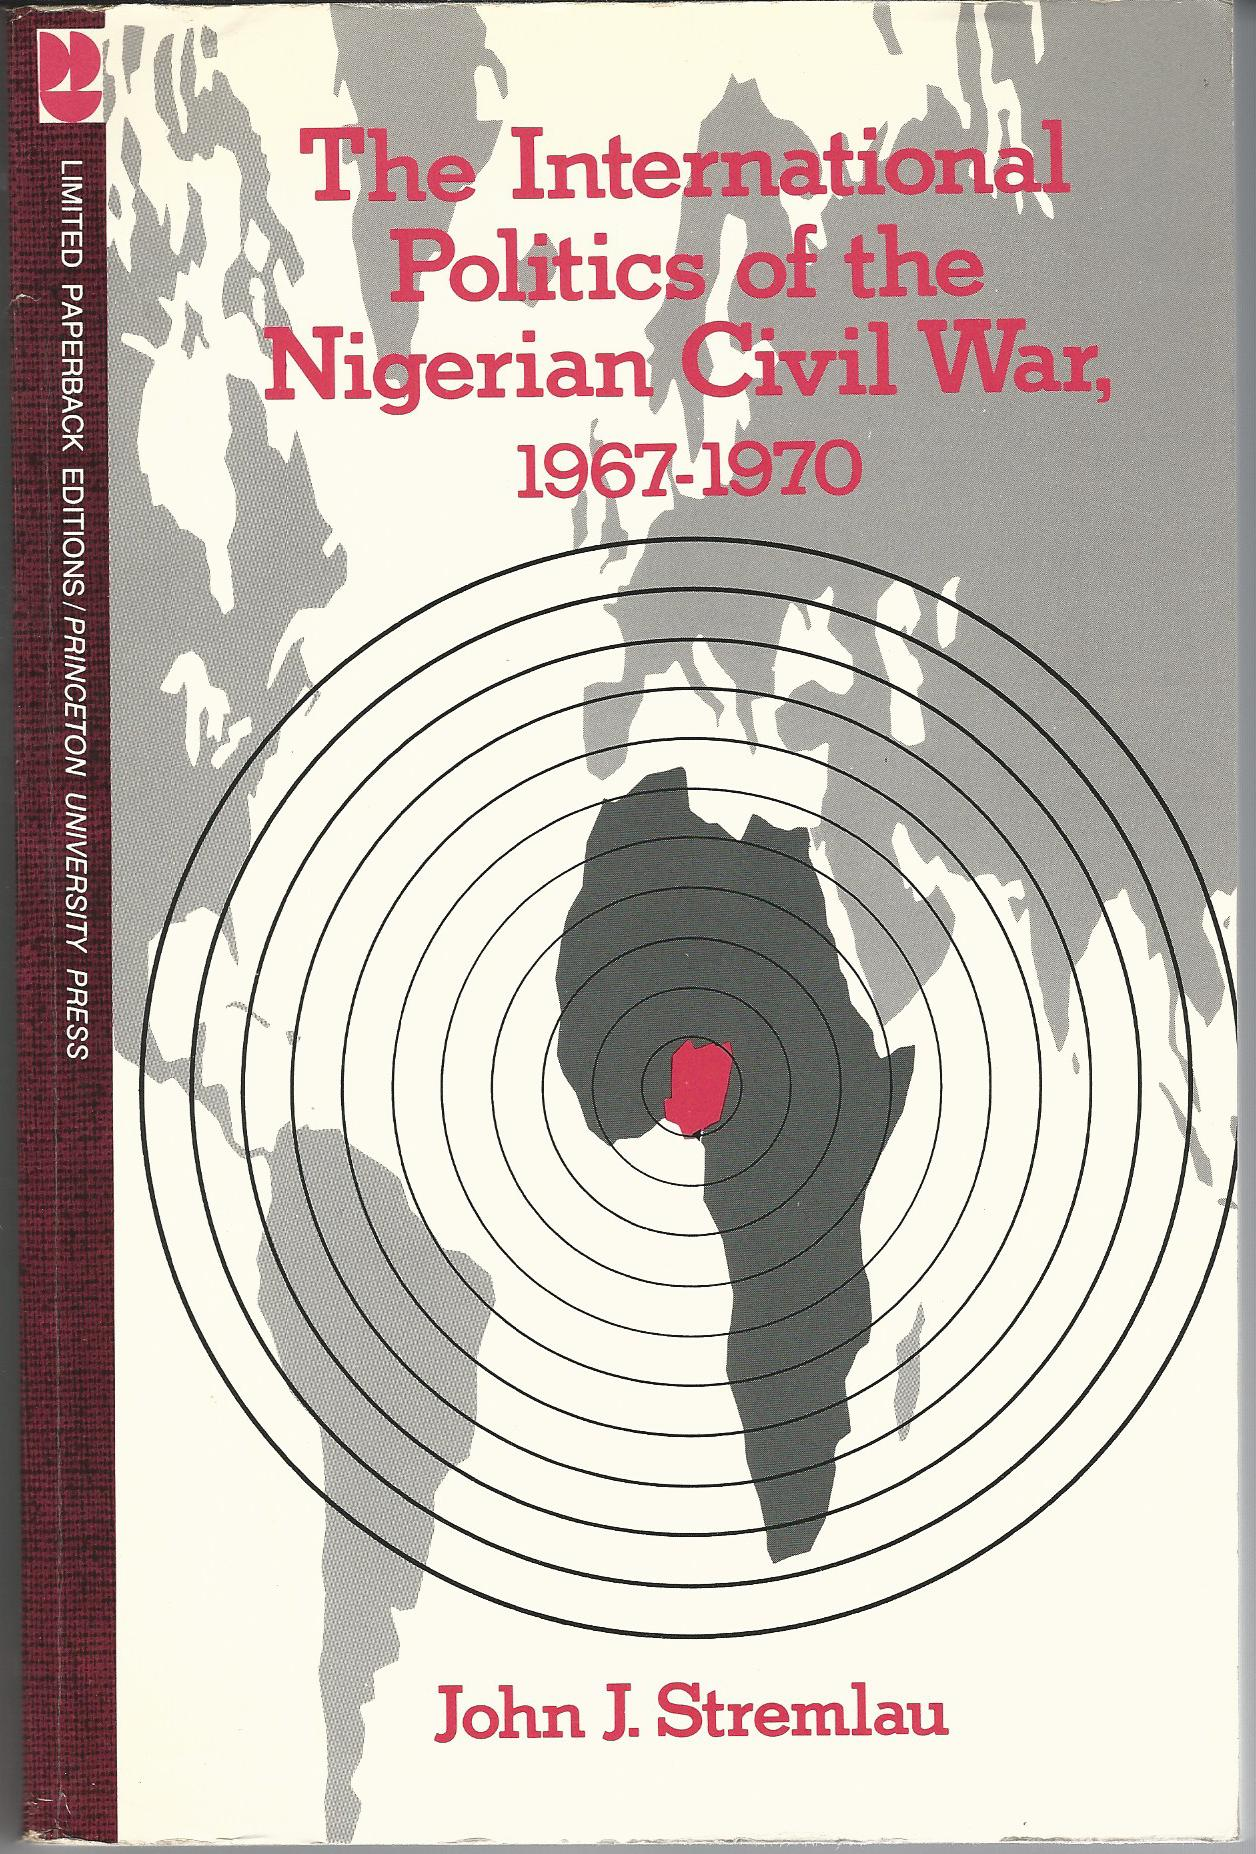 Image for The International Politics of the Nigerian Civil War, 1967-1970